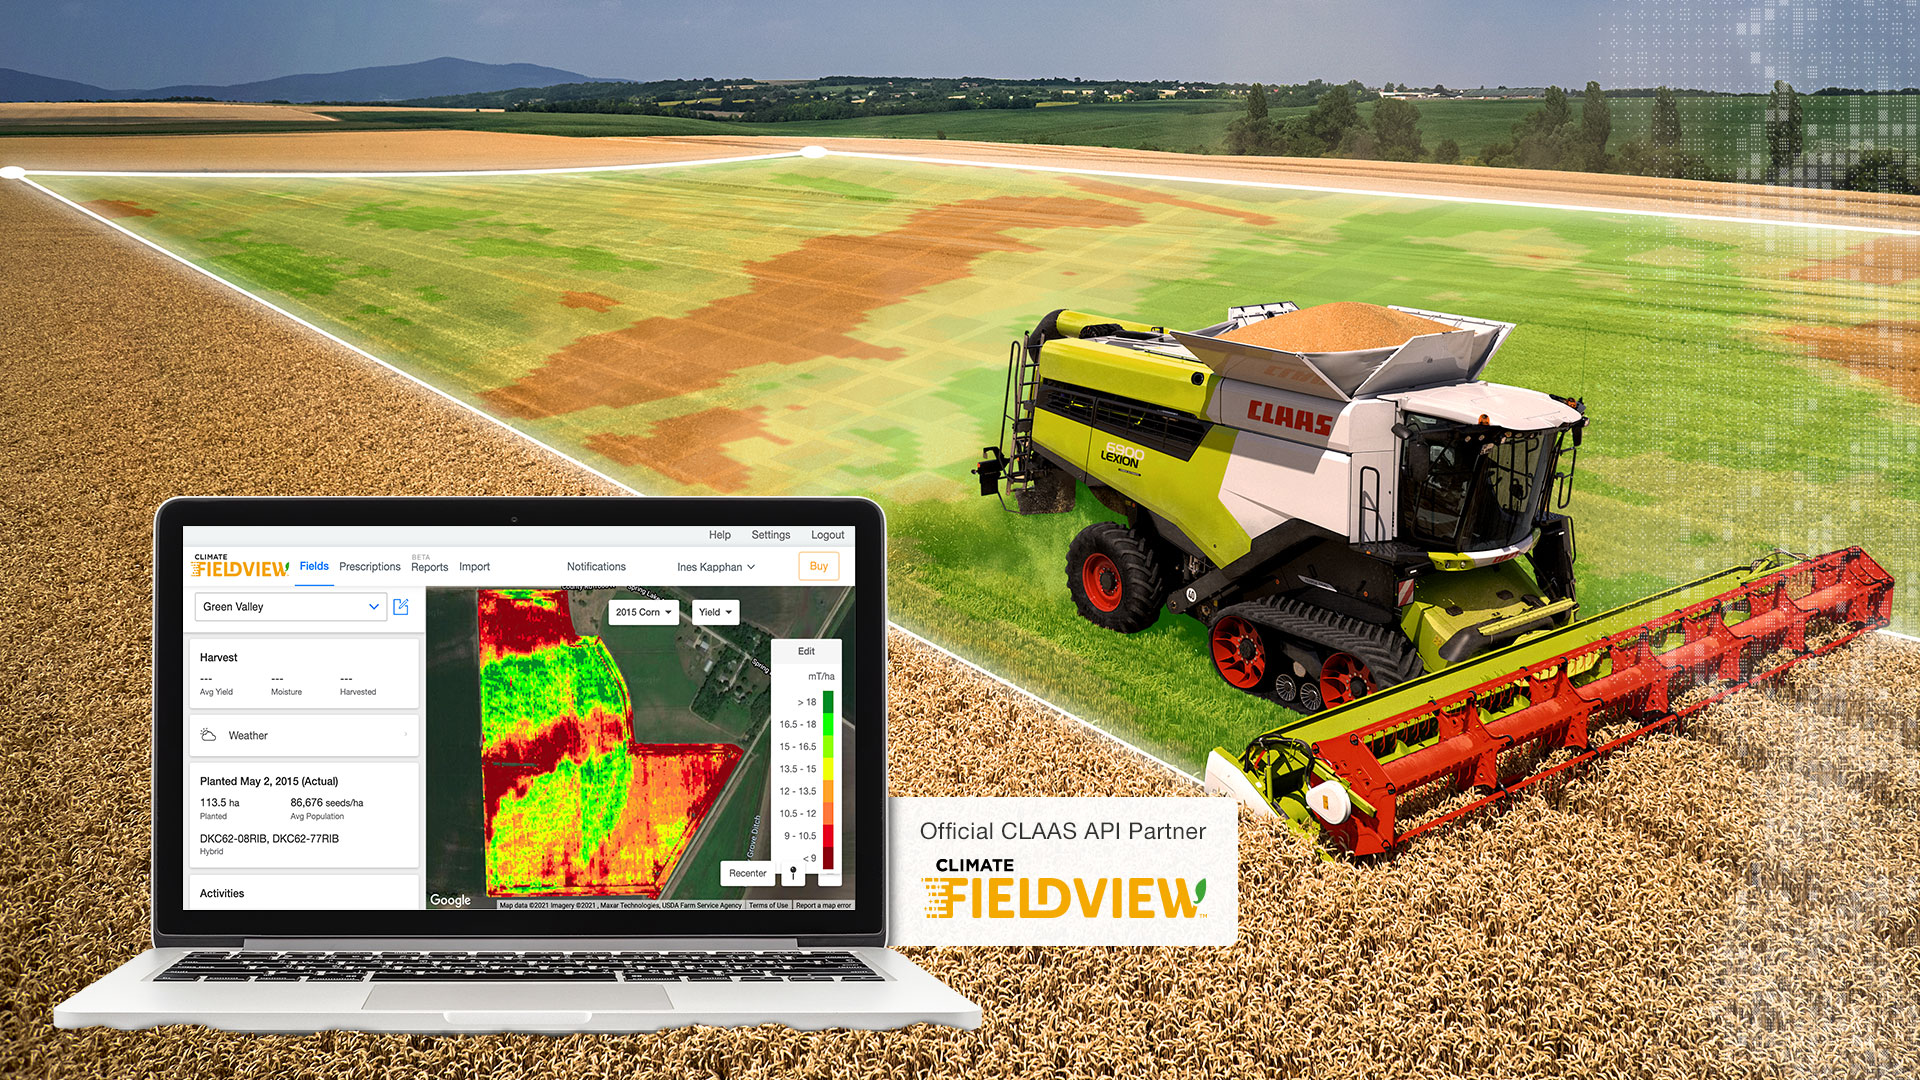 Bring on the harvest: CLAAS Telematics and FieldView™ change the game with API launch